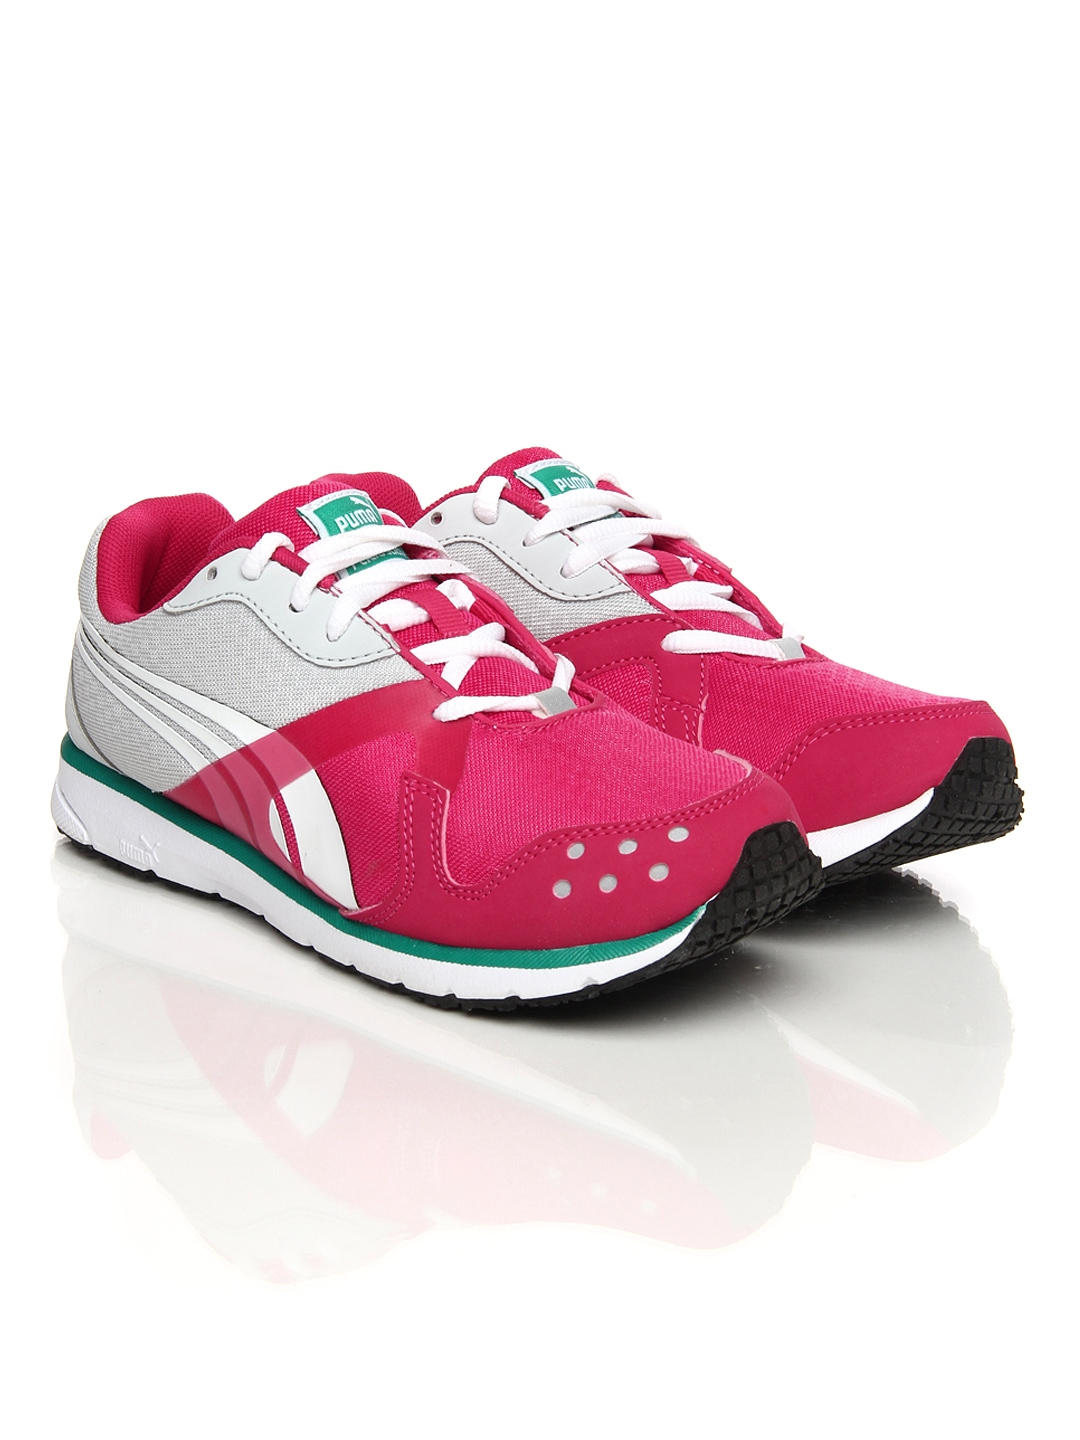 Puma Sports Shoes For Girls consumabulbs.co.uk